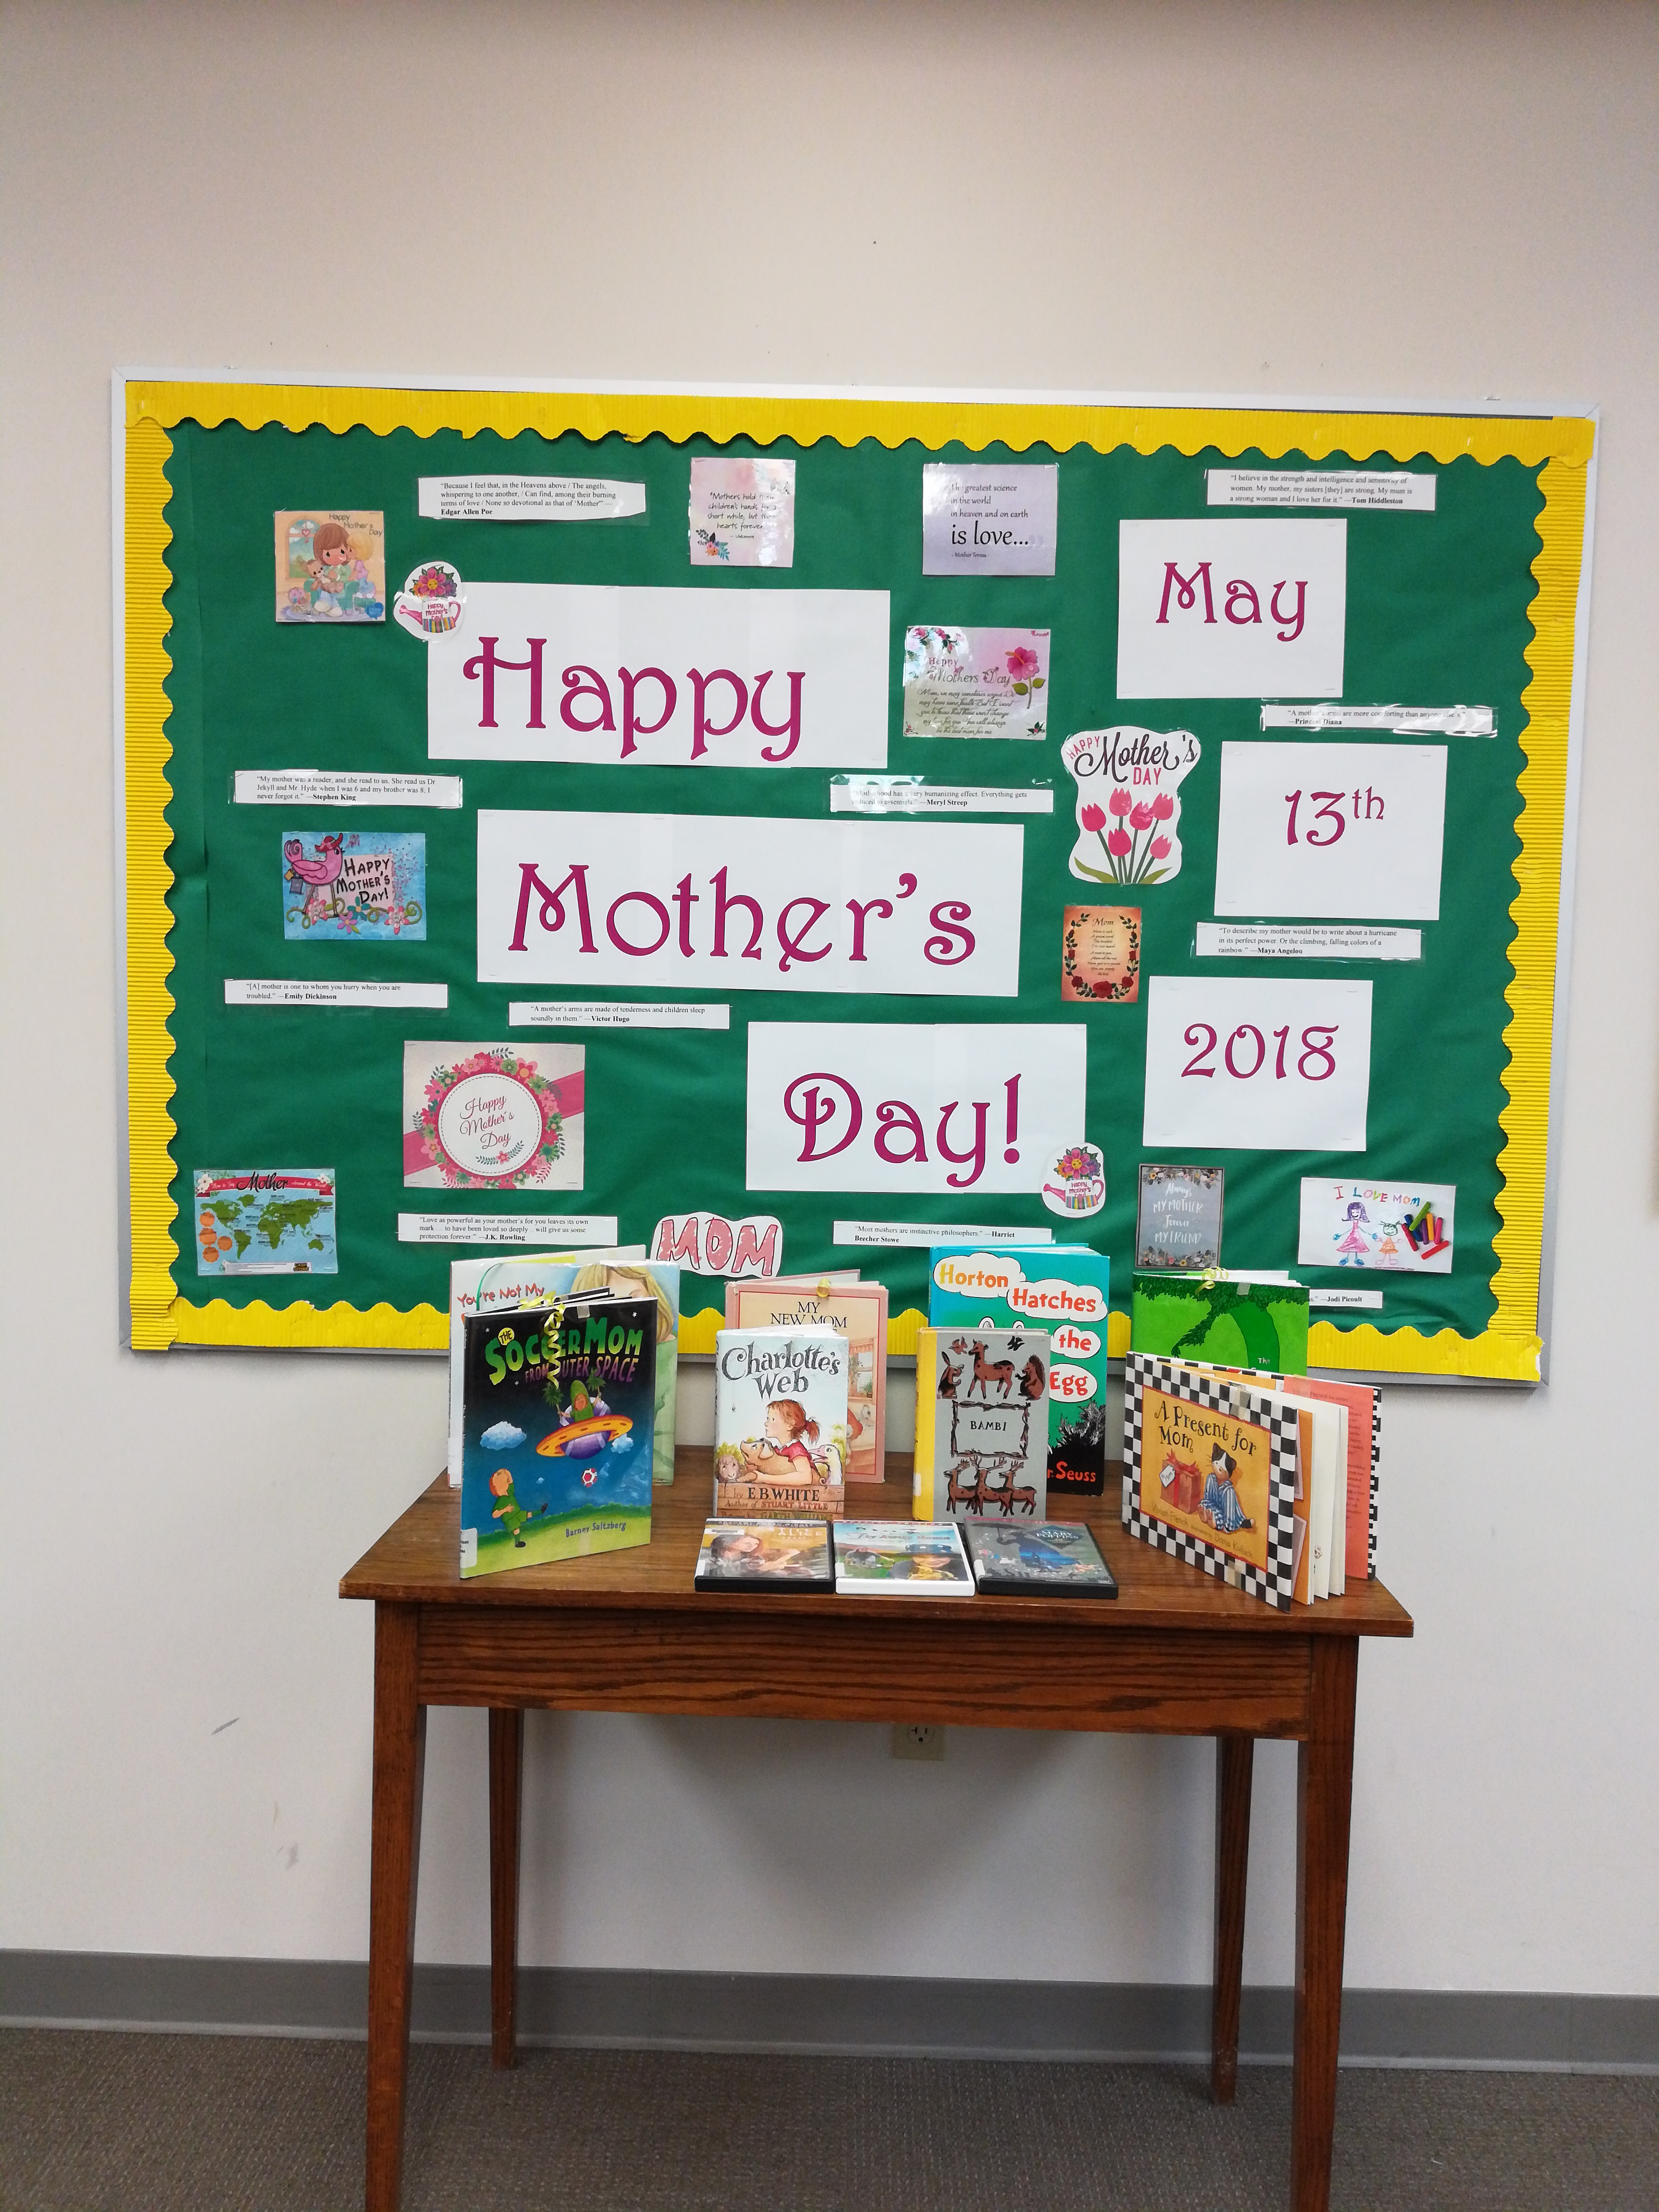 Mothers Day board display with books from our collection